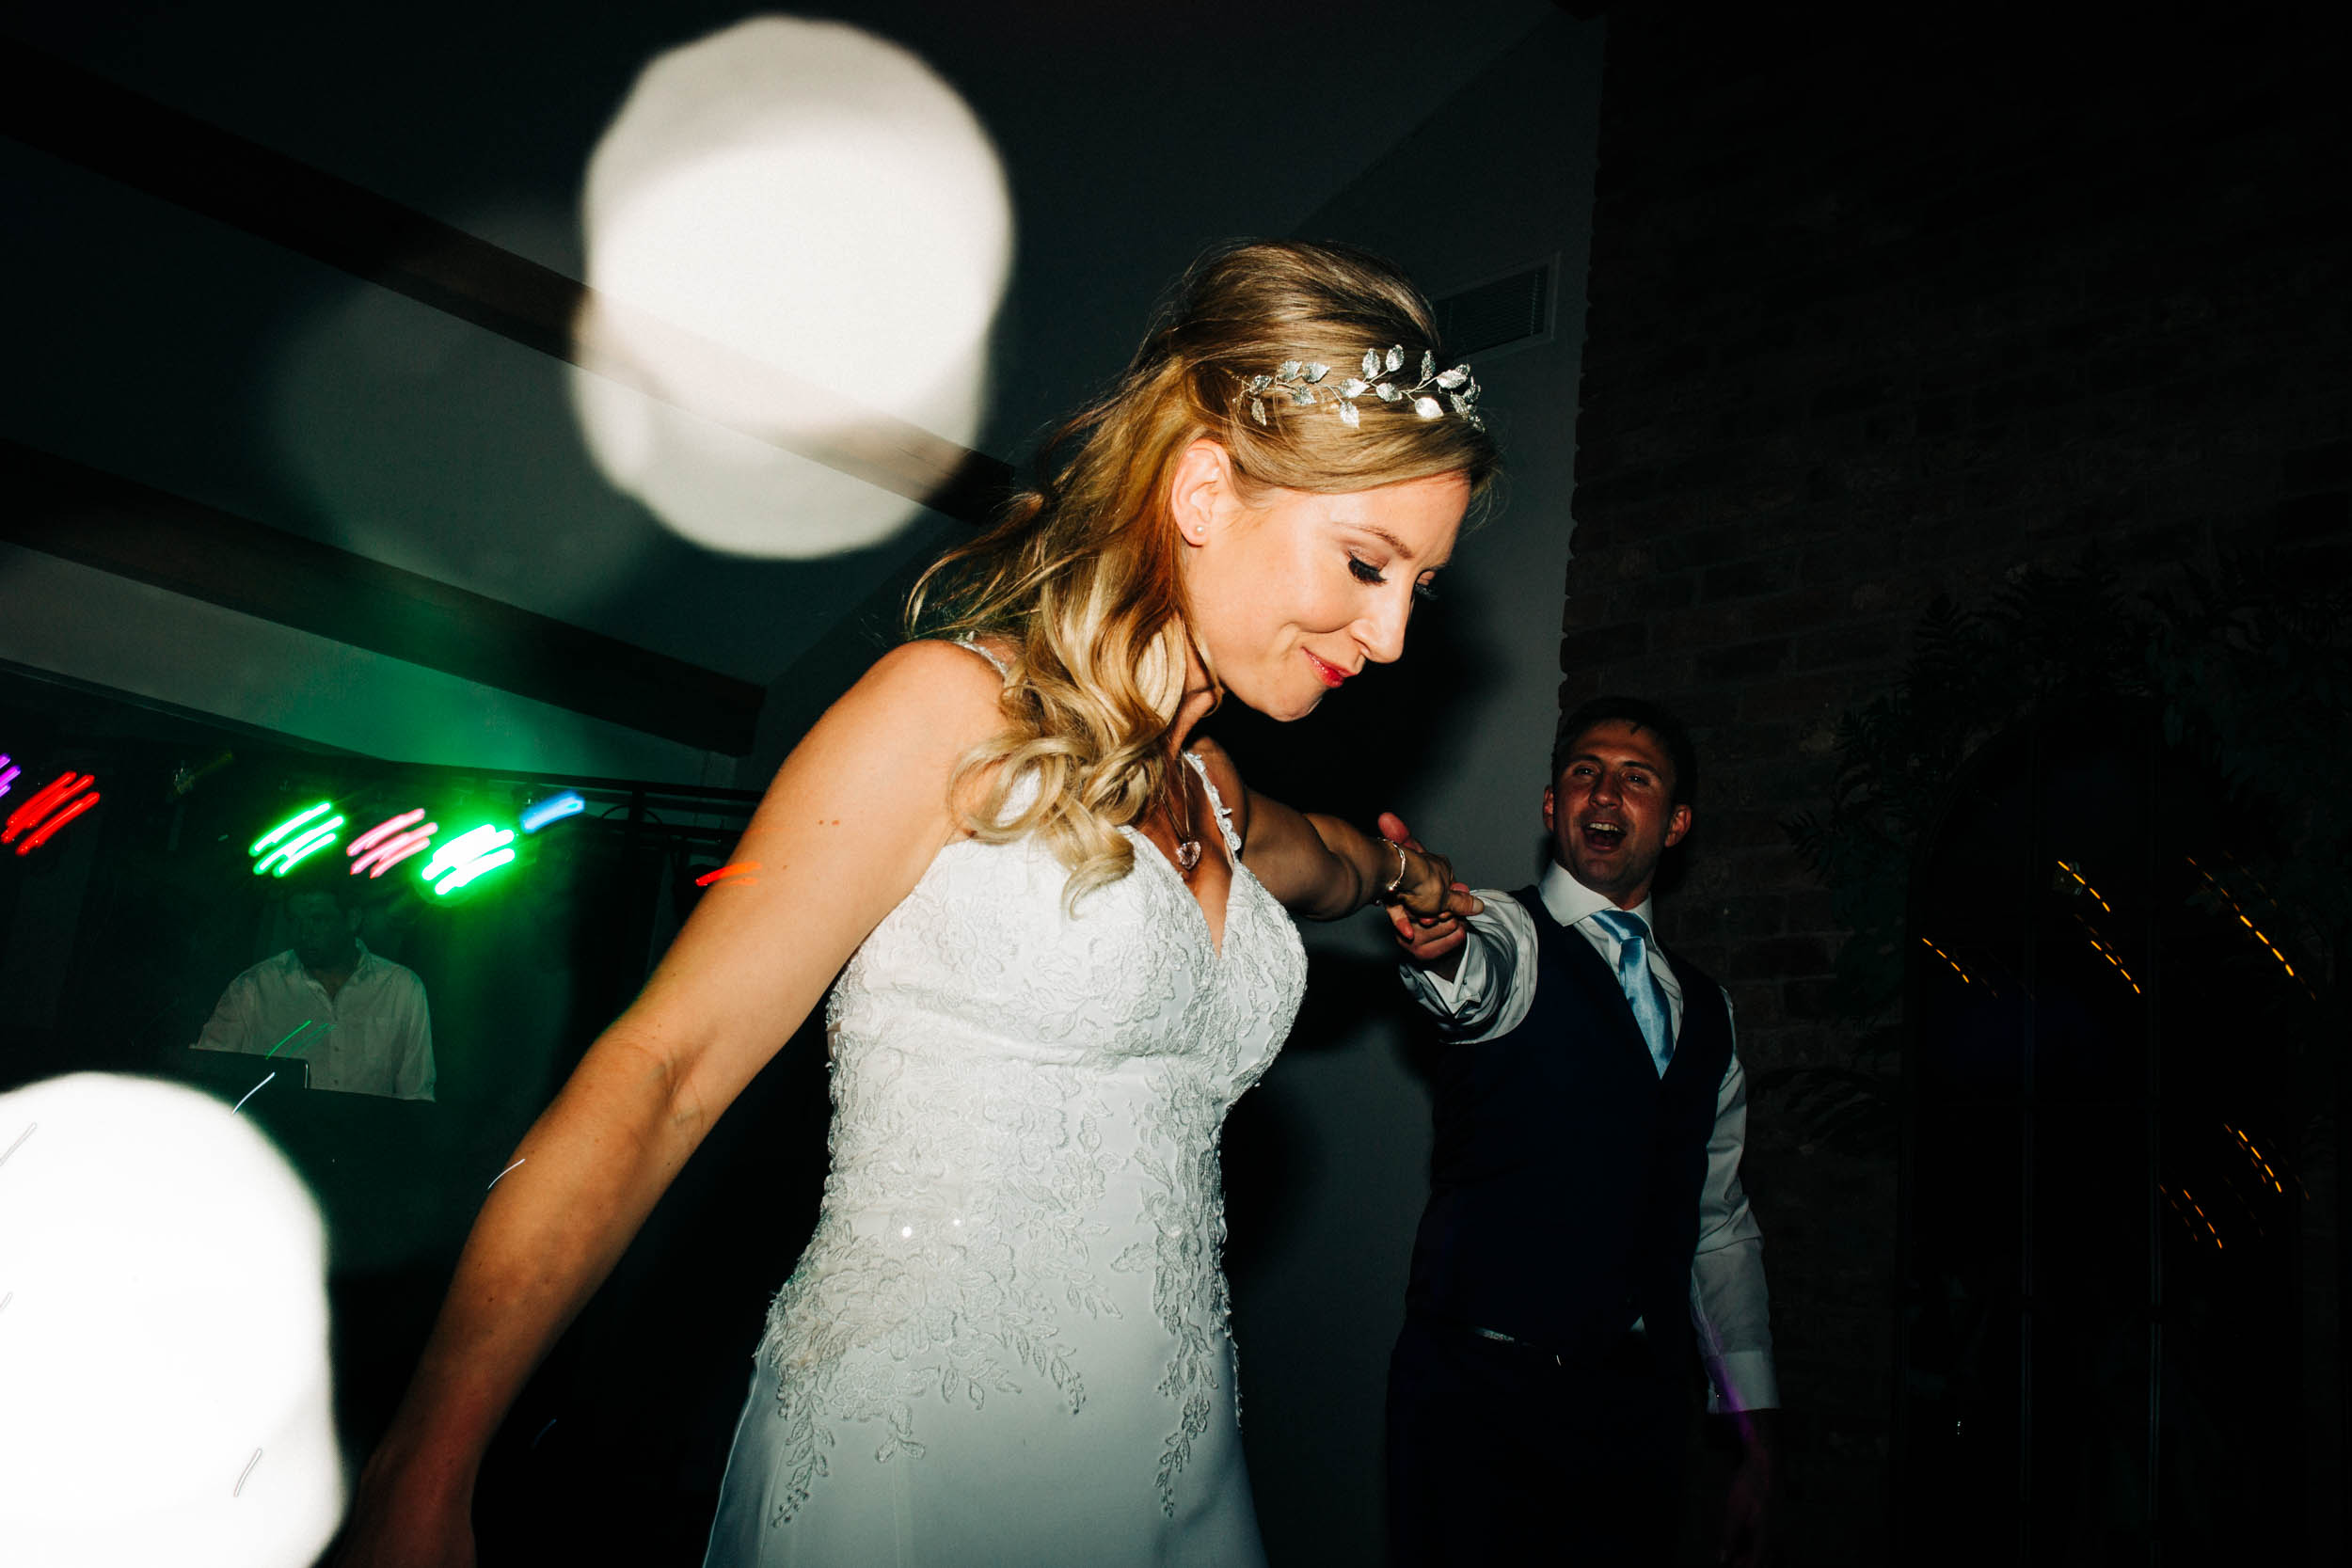 Alex_Sedgmond_Photography-SouthWalesWeddingPhotography-Wedding-Photographer-Cardiff-Chester-Pryors Hayes Golf Club-chesire-weddingphotography-fionaandvince-76.jpg